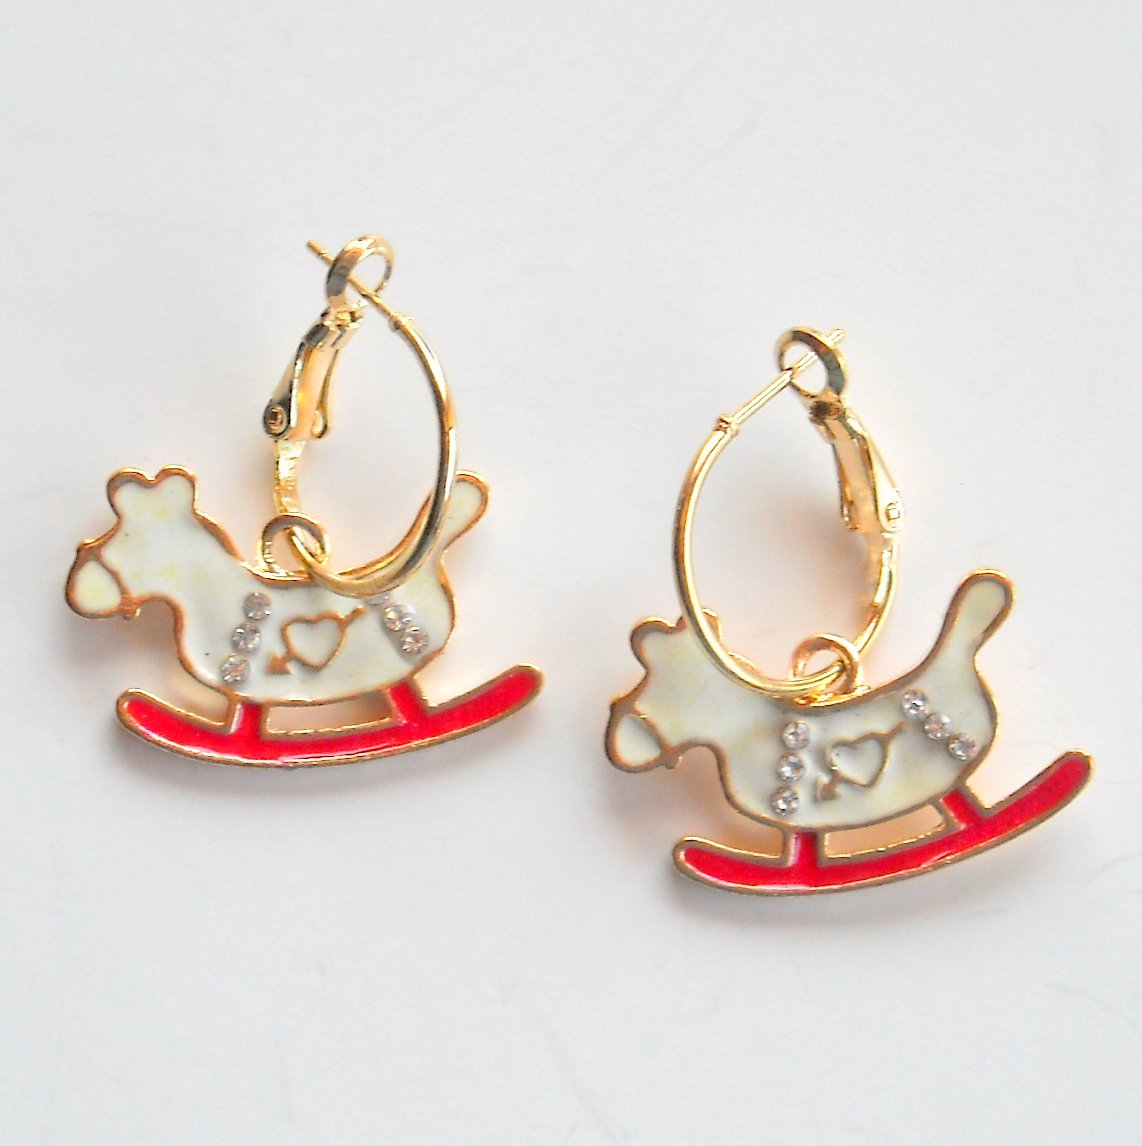 Rocking Horse Gold color Metal Dangle French Lock Fashion Earrings